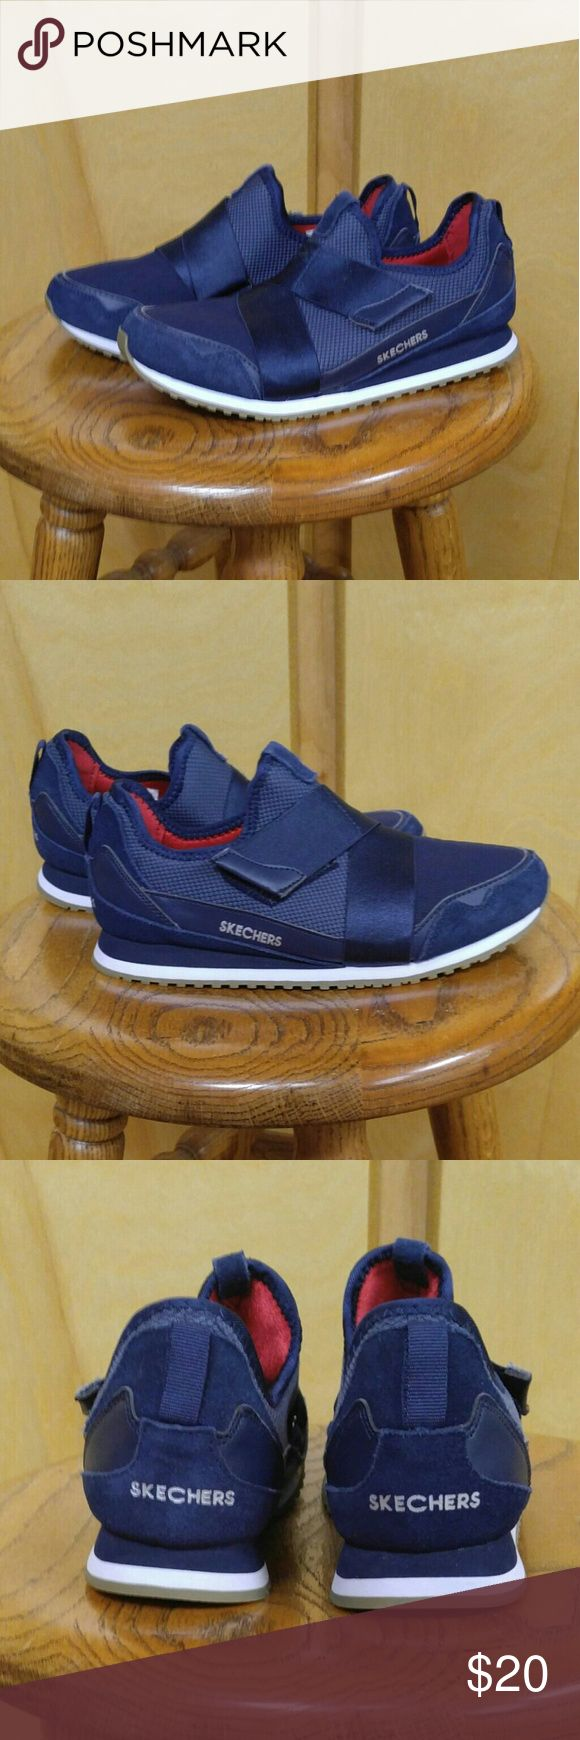 Navy Air Cooled Skechers Worn only once. No odor, non-smoker, no pets. Features stretch fabric front and collar panels for added comfort. Stretch satiny finish fabric criss-crossing instep straps. Fabric heel stripe overlay with pull on top tab. Embossed SKECHERS logo on side panel. Stretch fit collar and front. Soft fabric shoe lining. Air Cooled, Memory Foam cushioned comfort insole. Cushioned jogger-style comfort midsole. Flexible rubber jogger-style traction outsole. Size 7.5 M. Skechers…